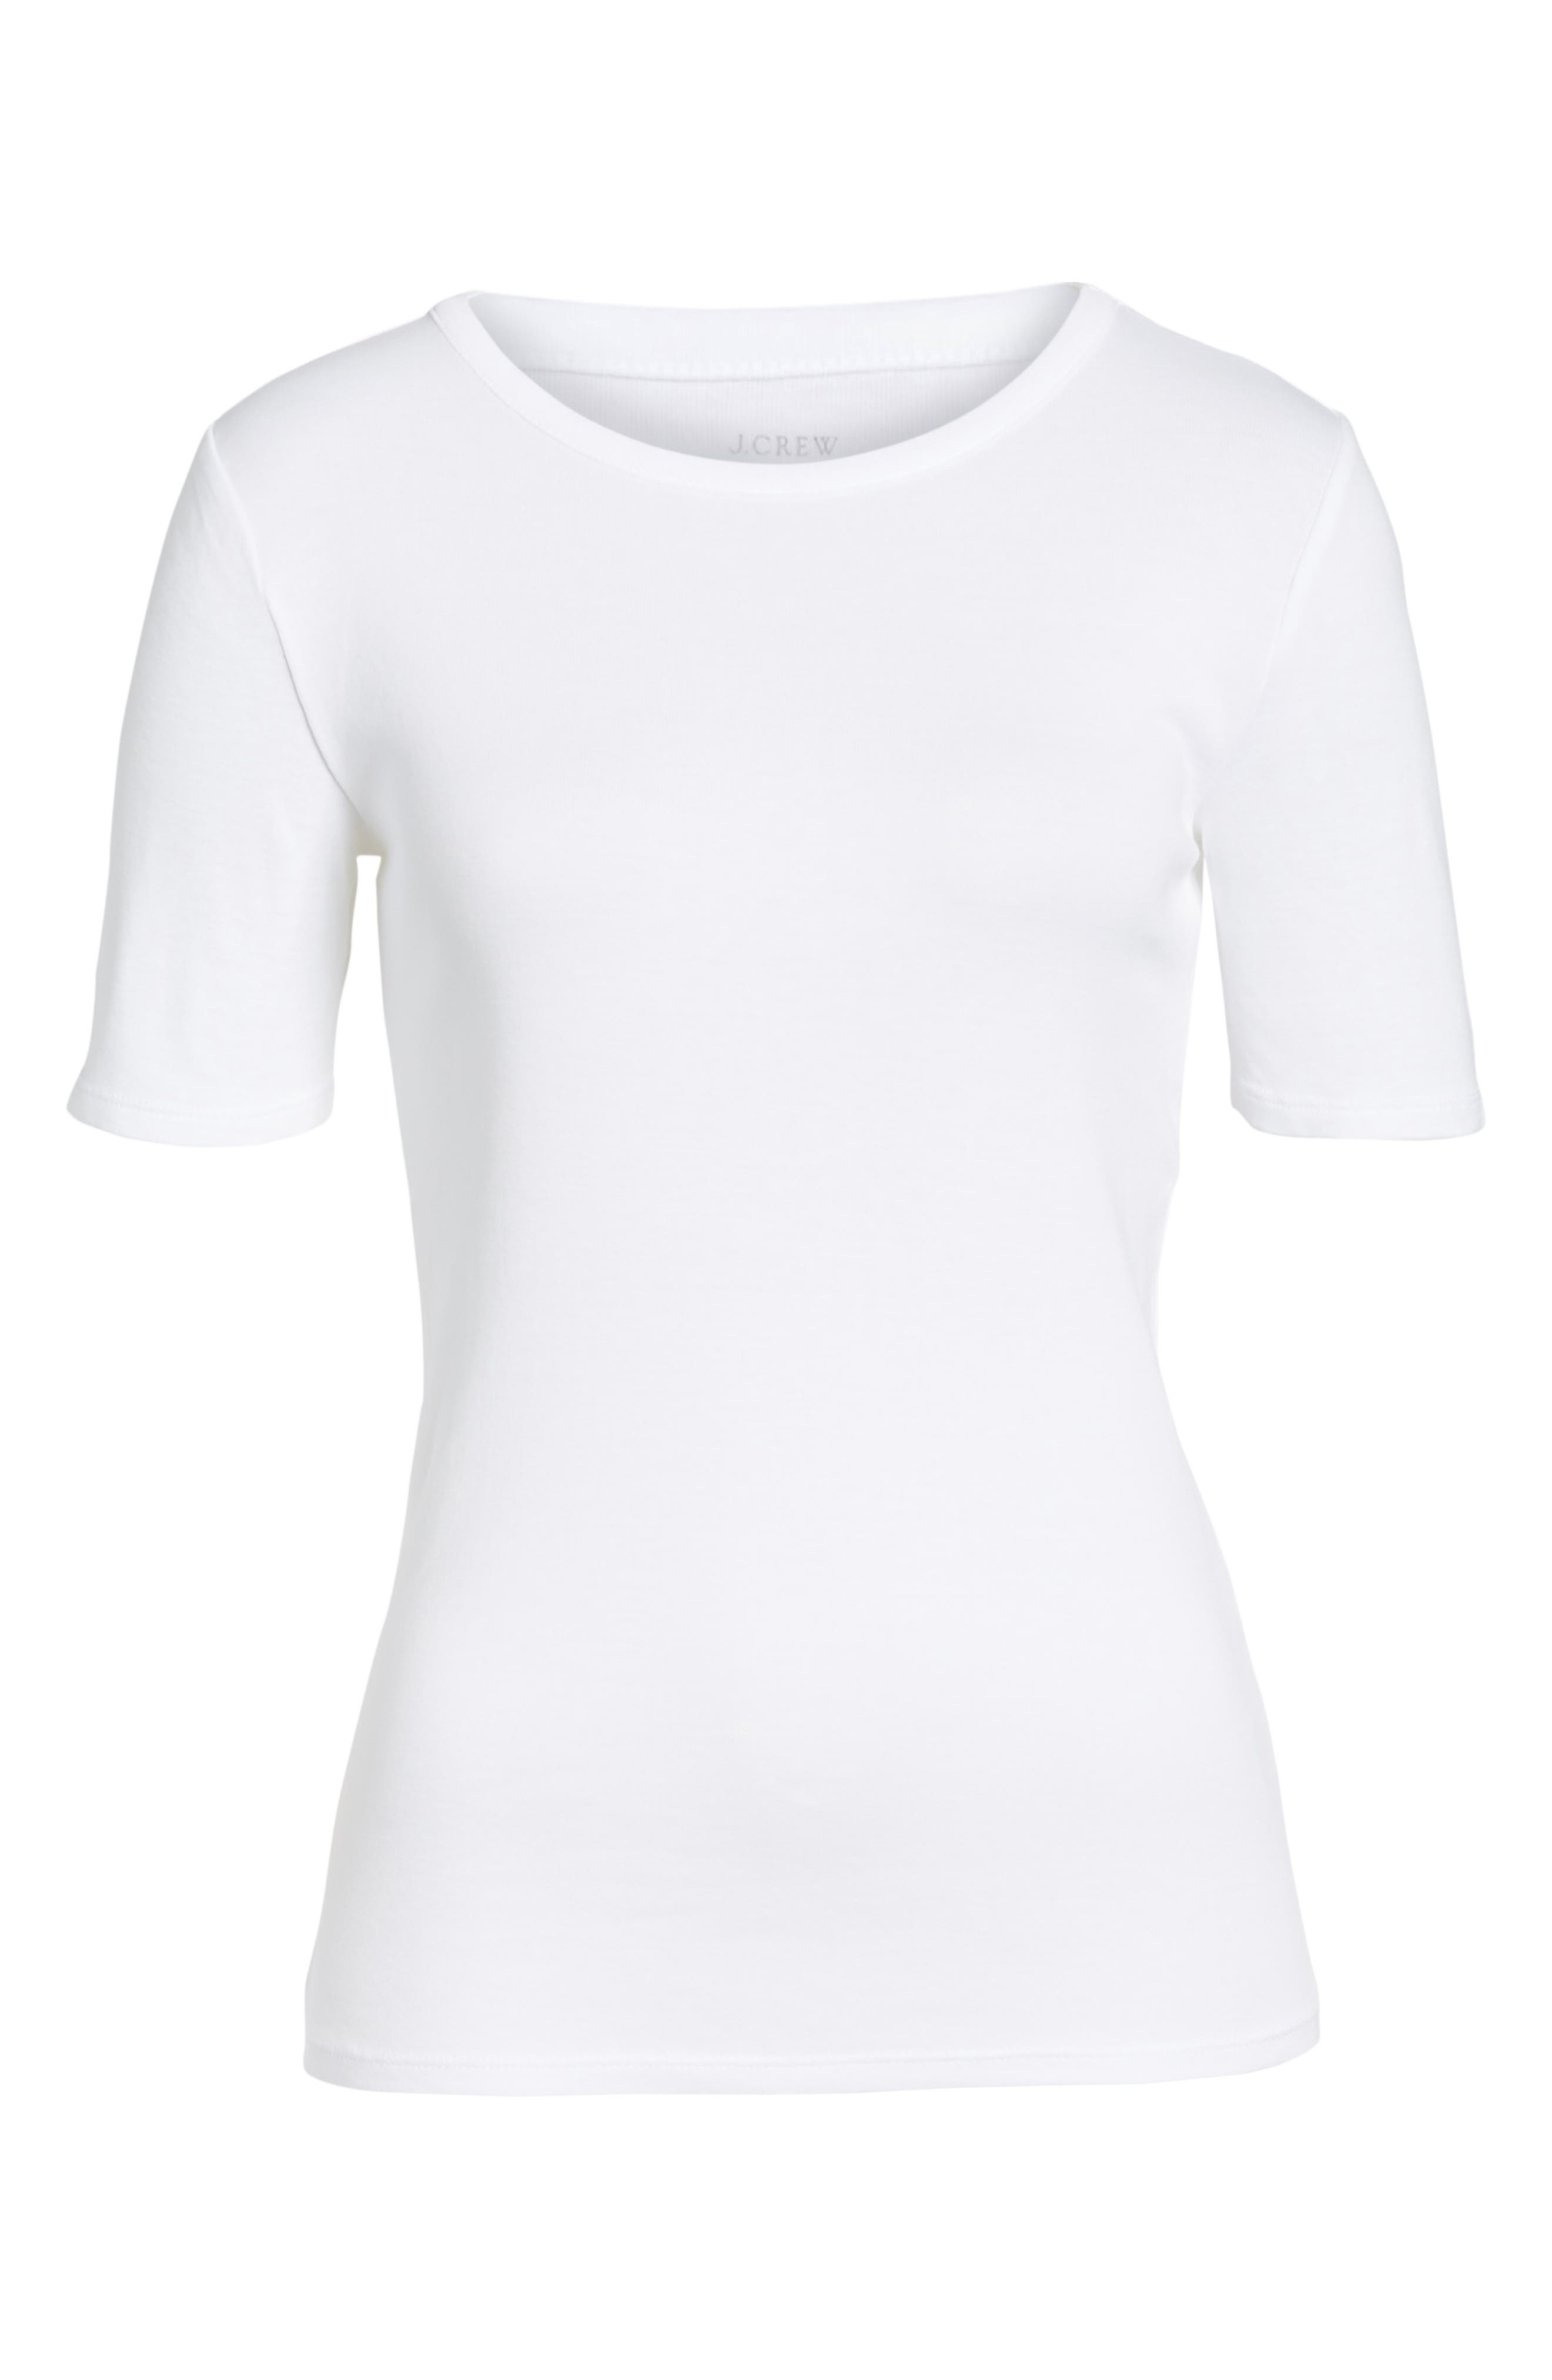 New Perfect Fit Tee,                             Main thumbnail 1, color,                             WHITE